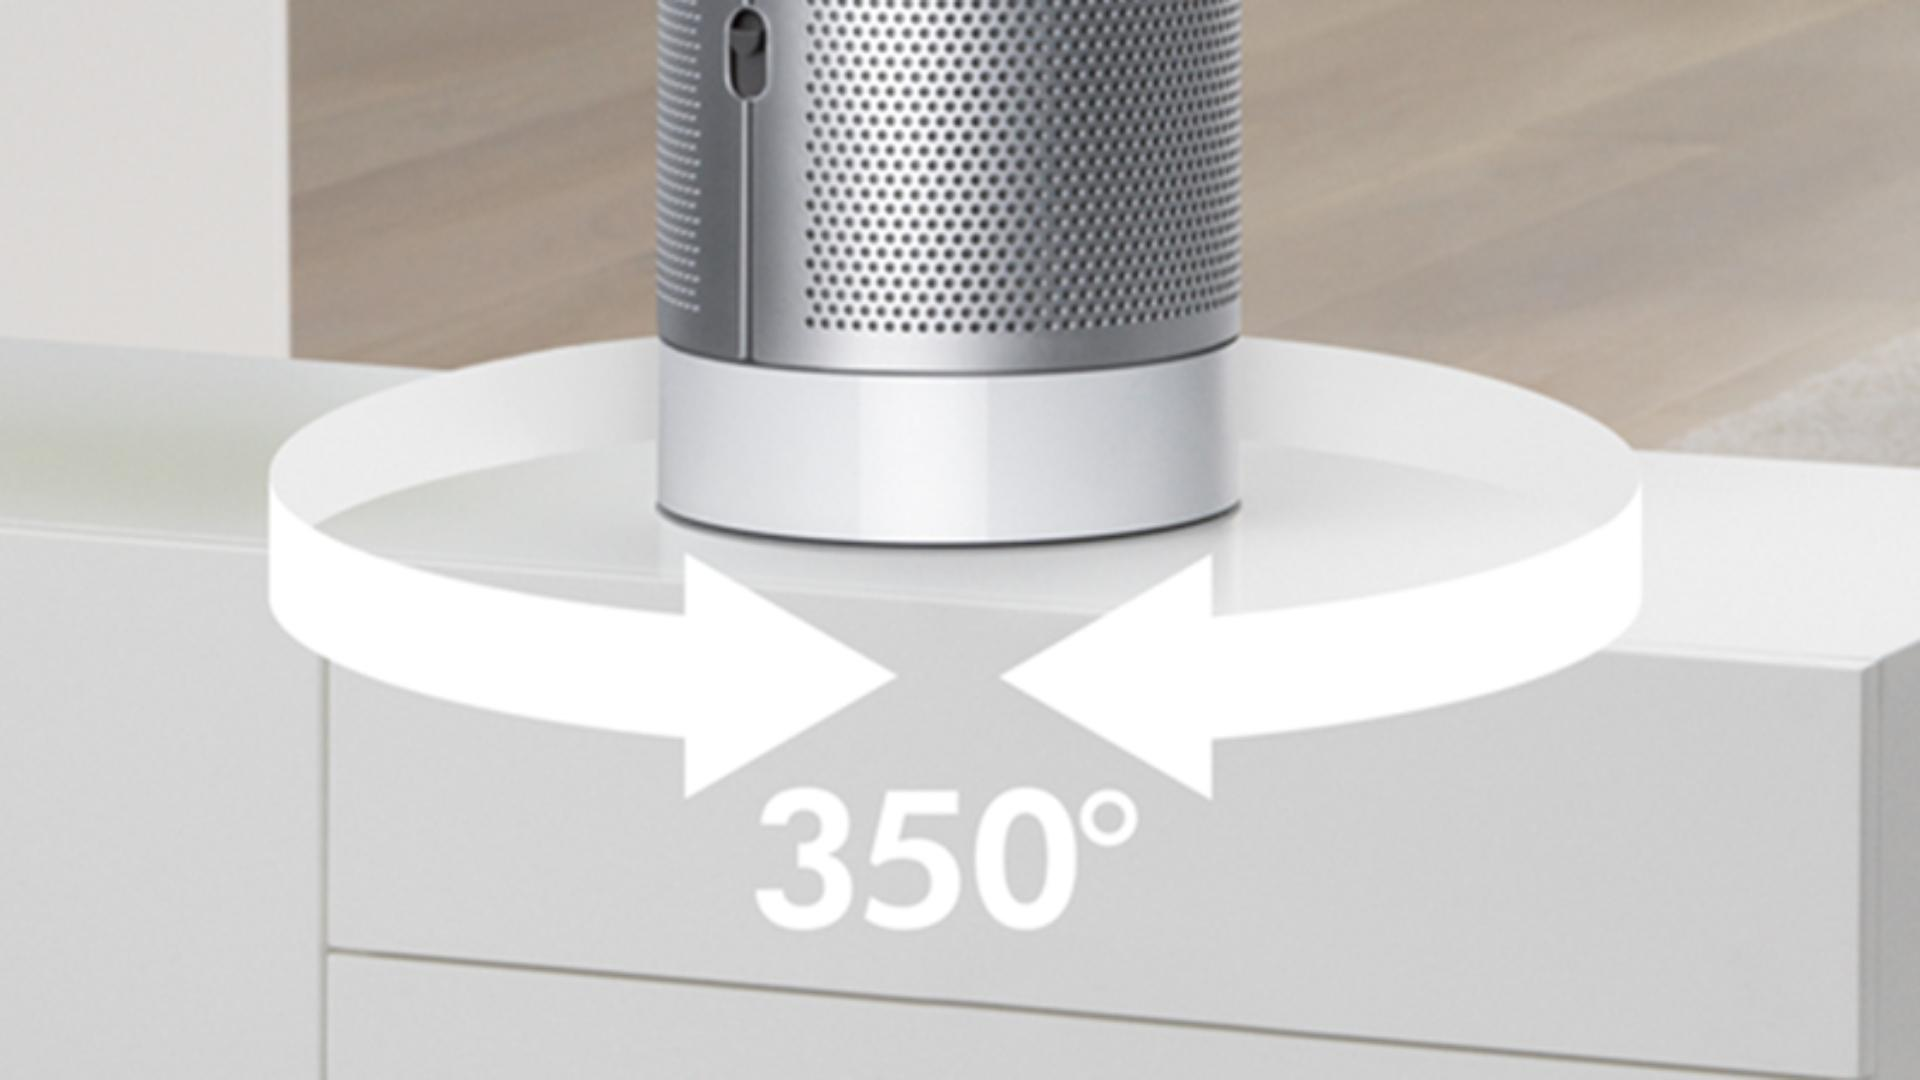 Dyson Pure Cool oscillates up to 350 degrees